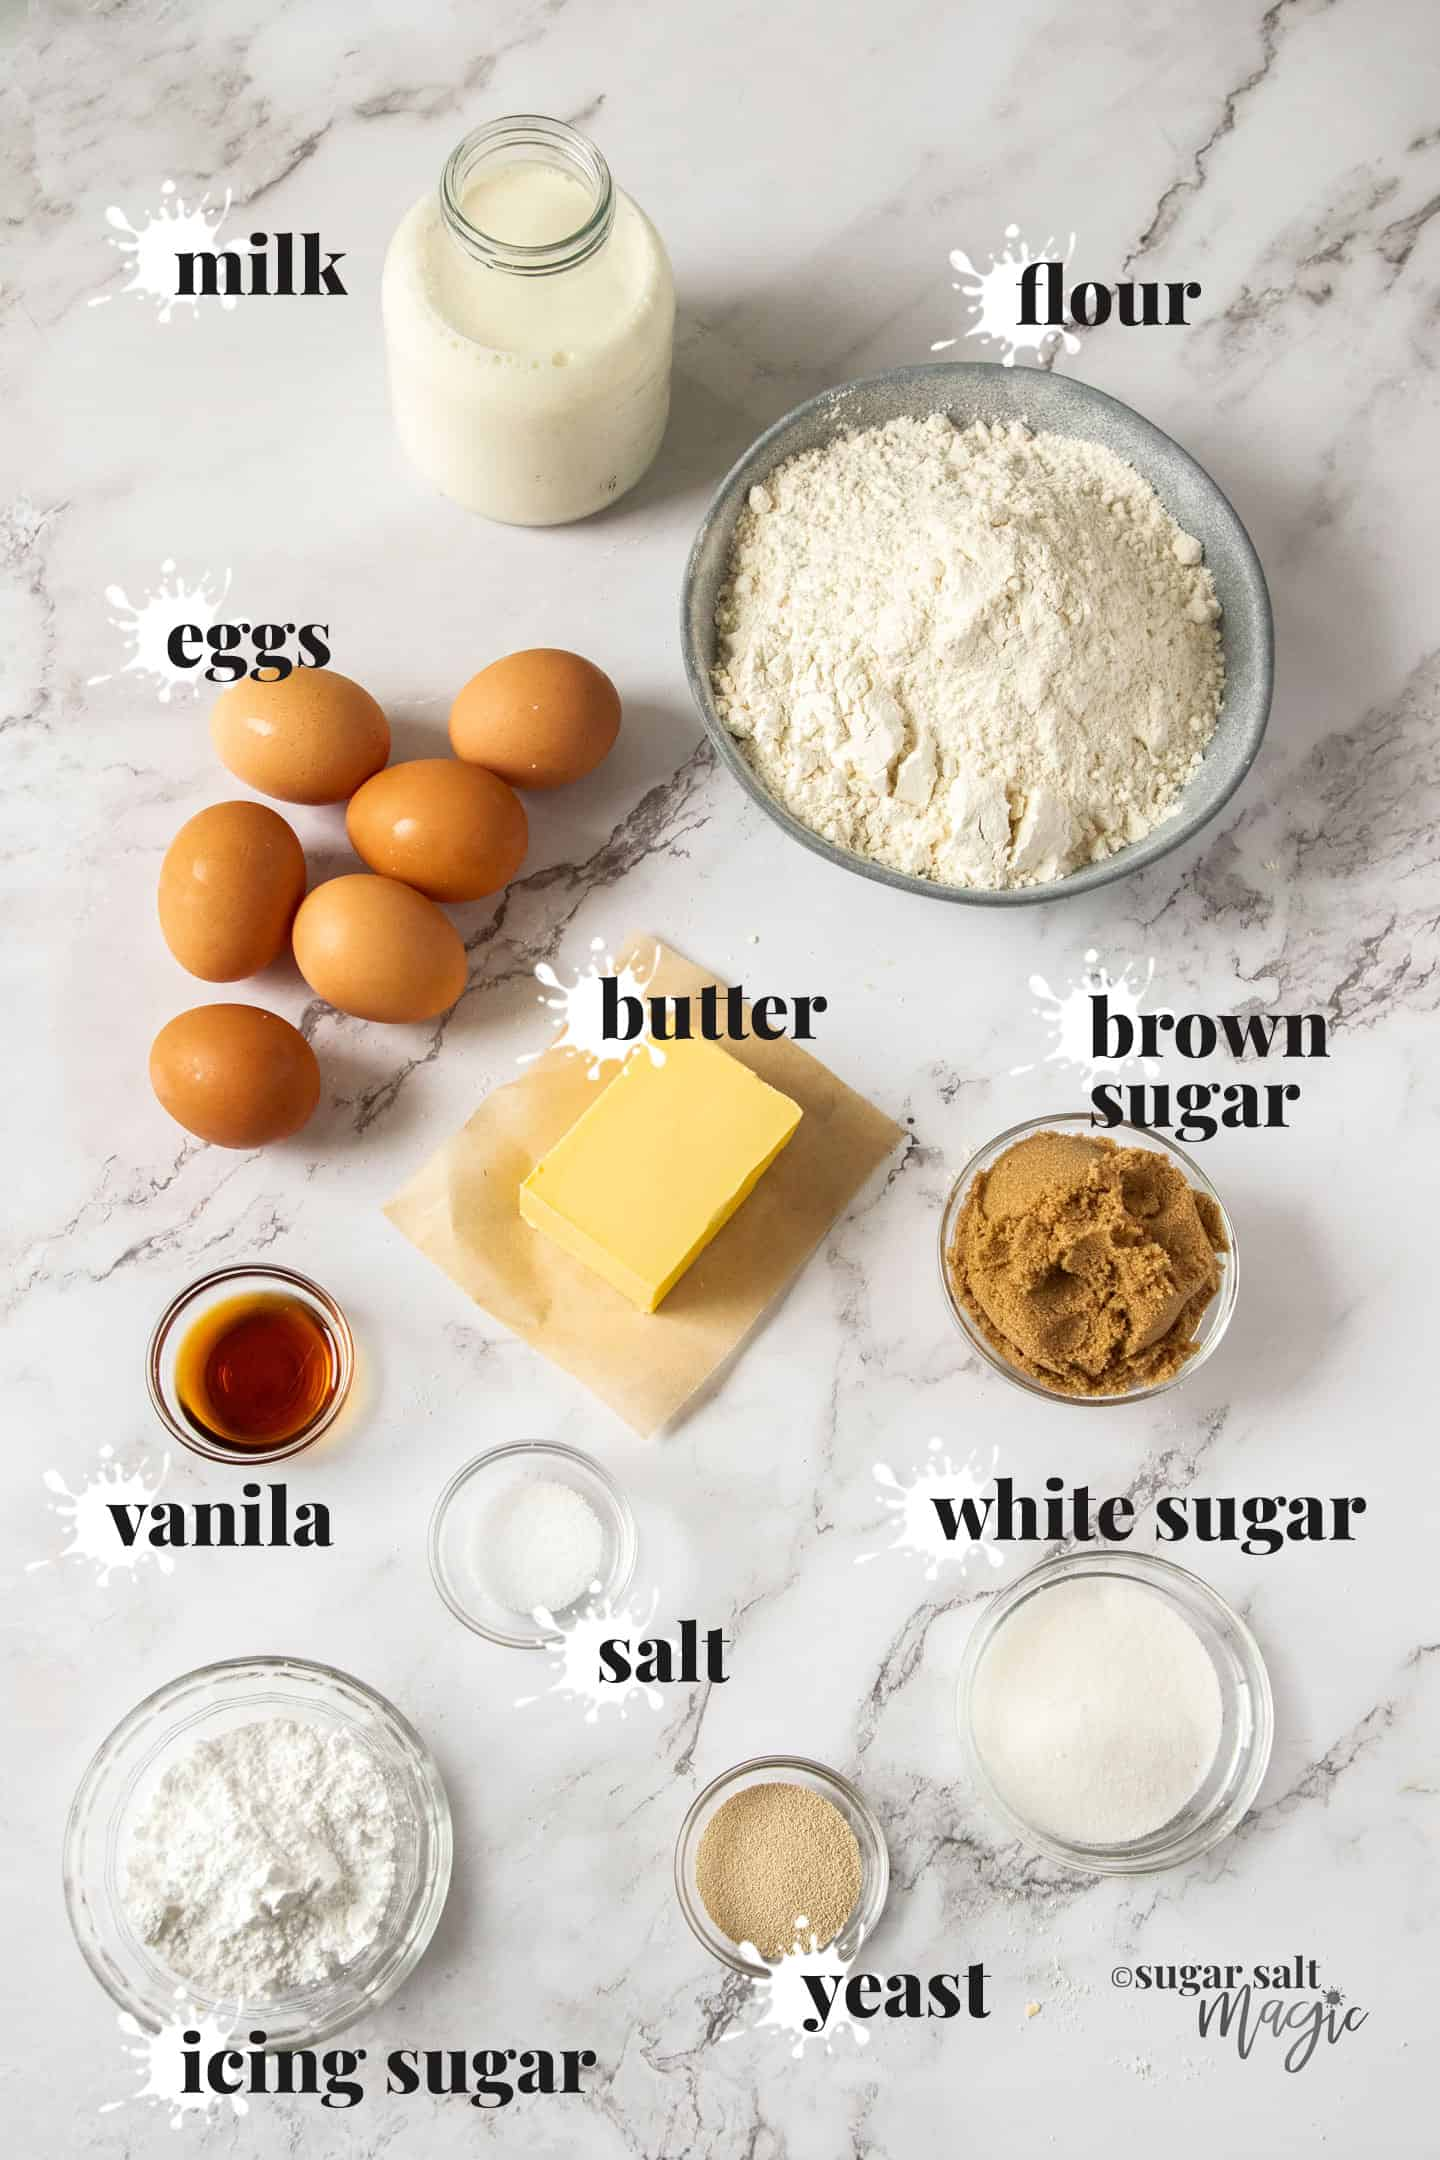 Ingredients for caramel doughnuts on a marble benchtop.